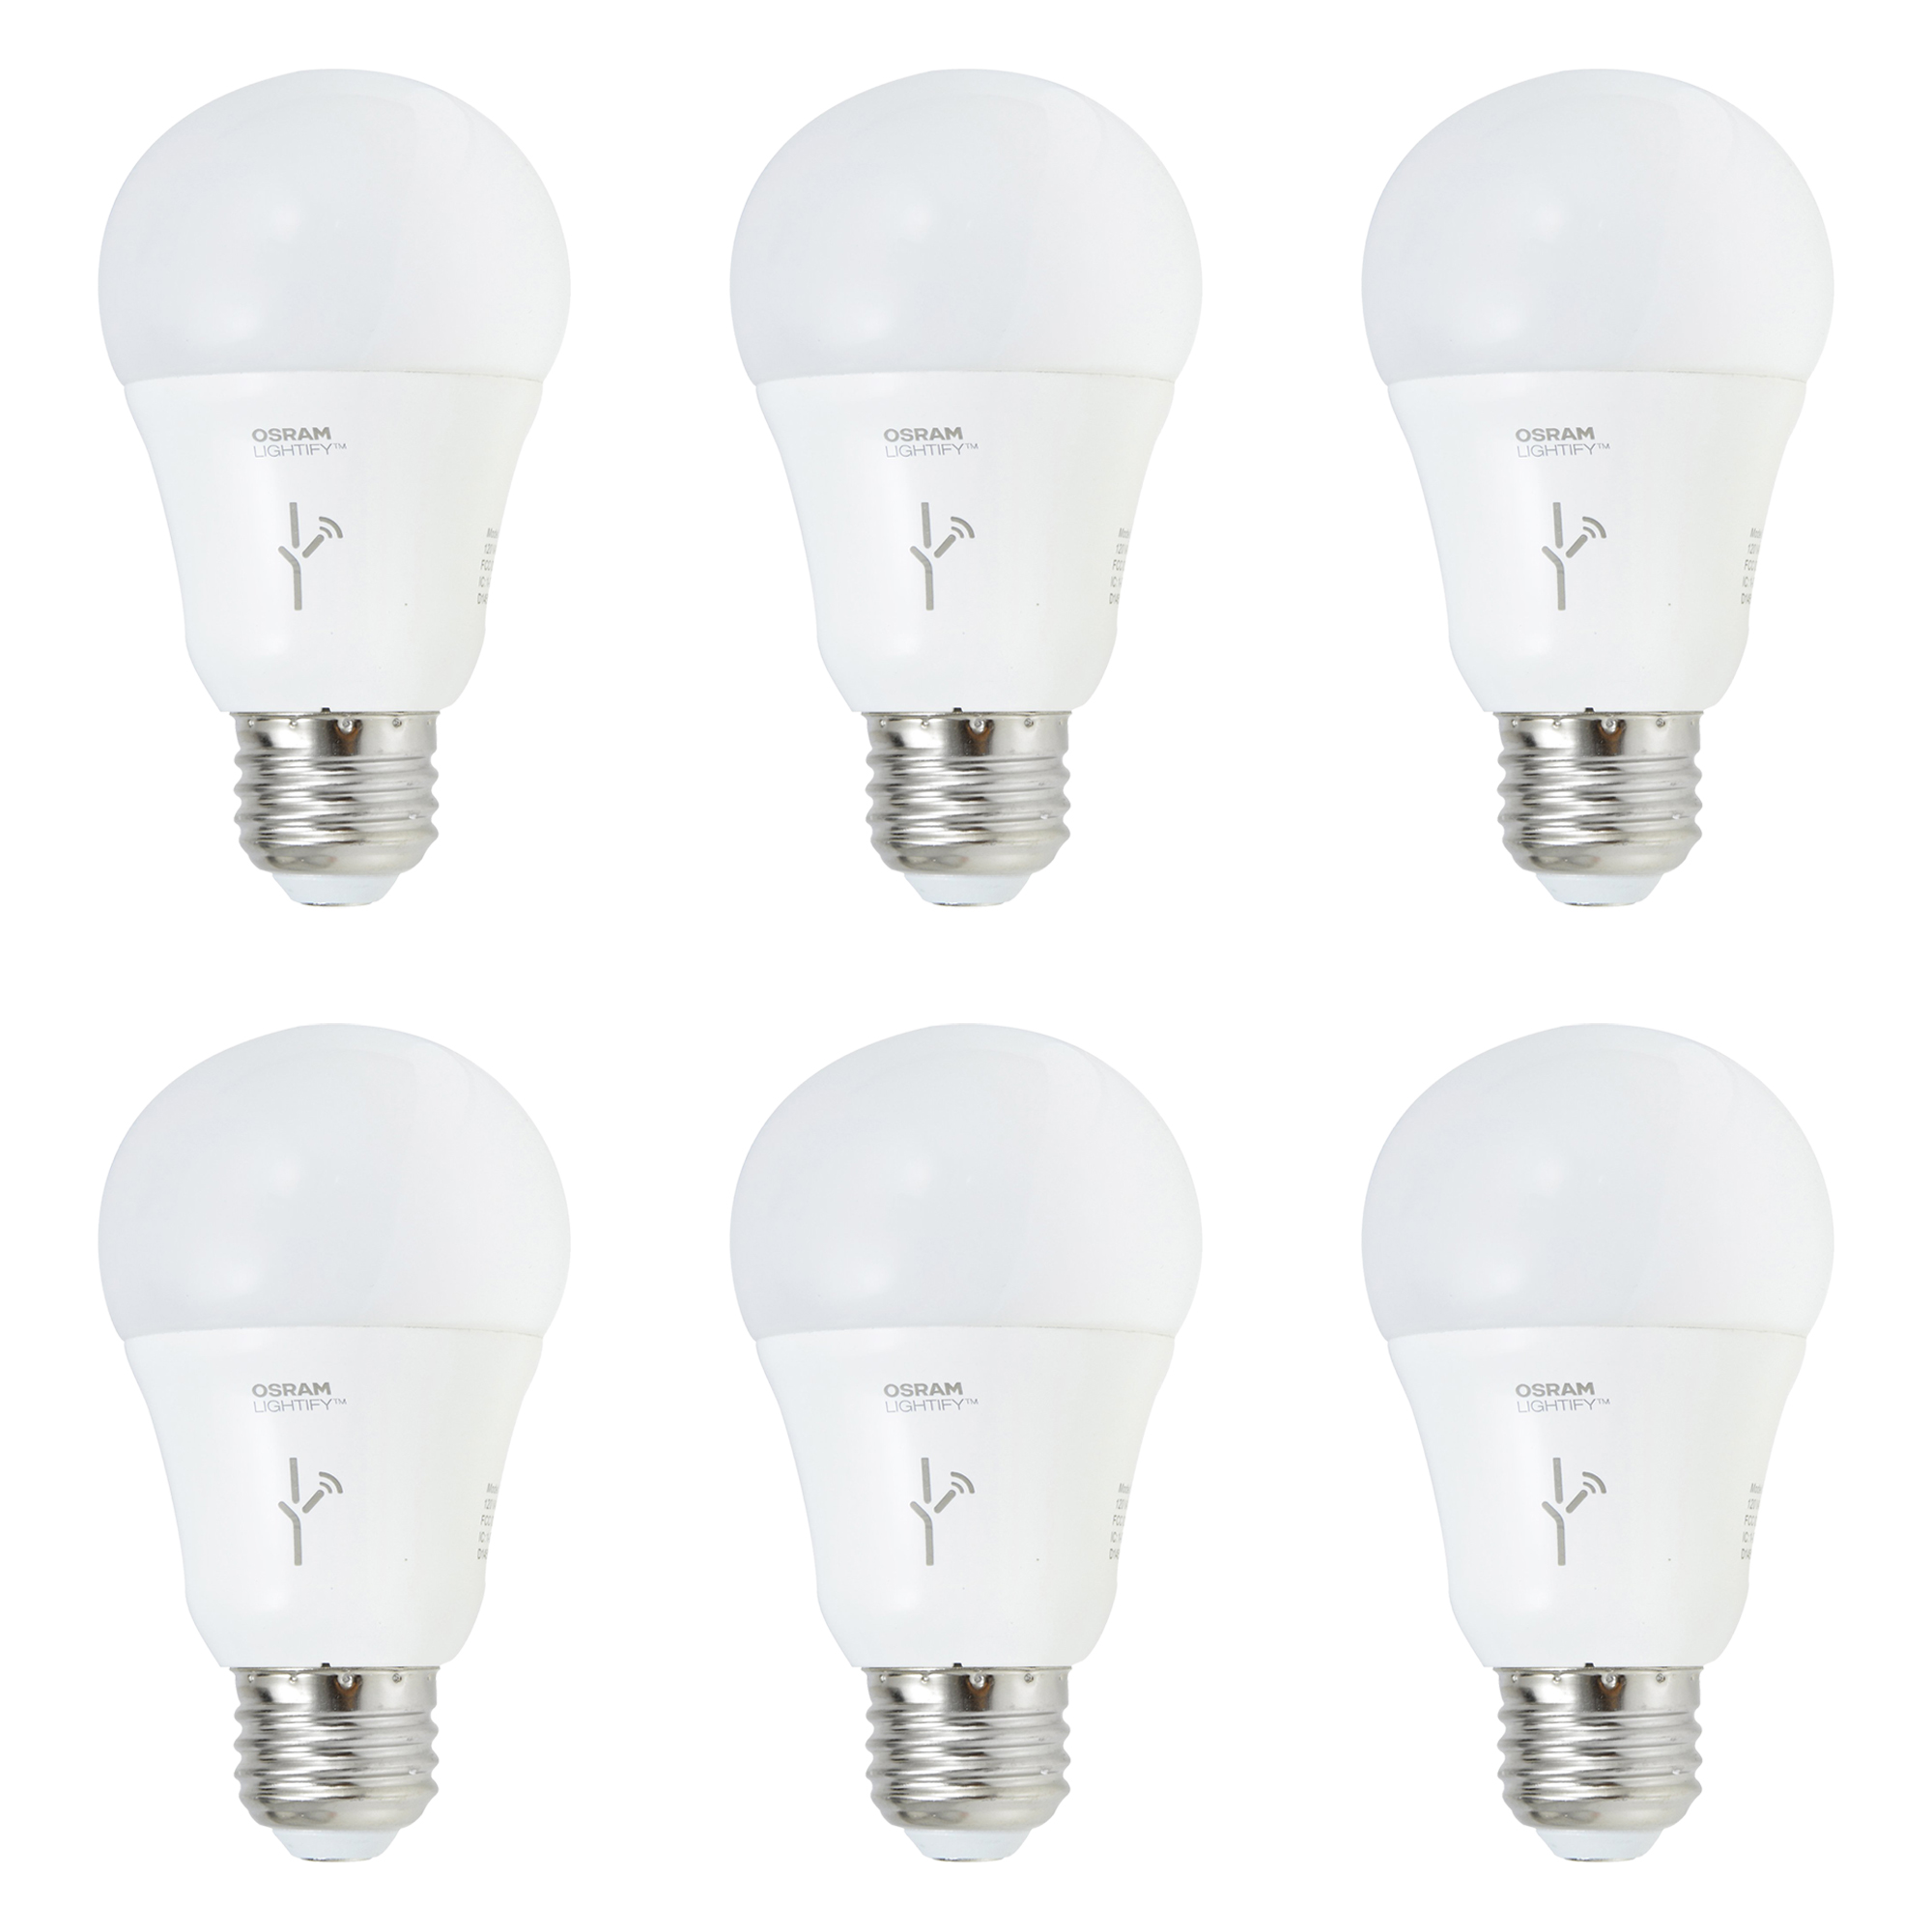 sylvania lightify 60 watt a19 tunable white smart home led light bulb 6 pack 842372116534 ebay. Black Bedroom Furniture Sets. Home Design Ideas